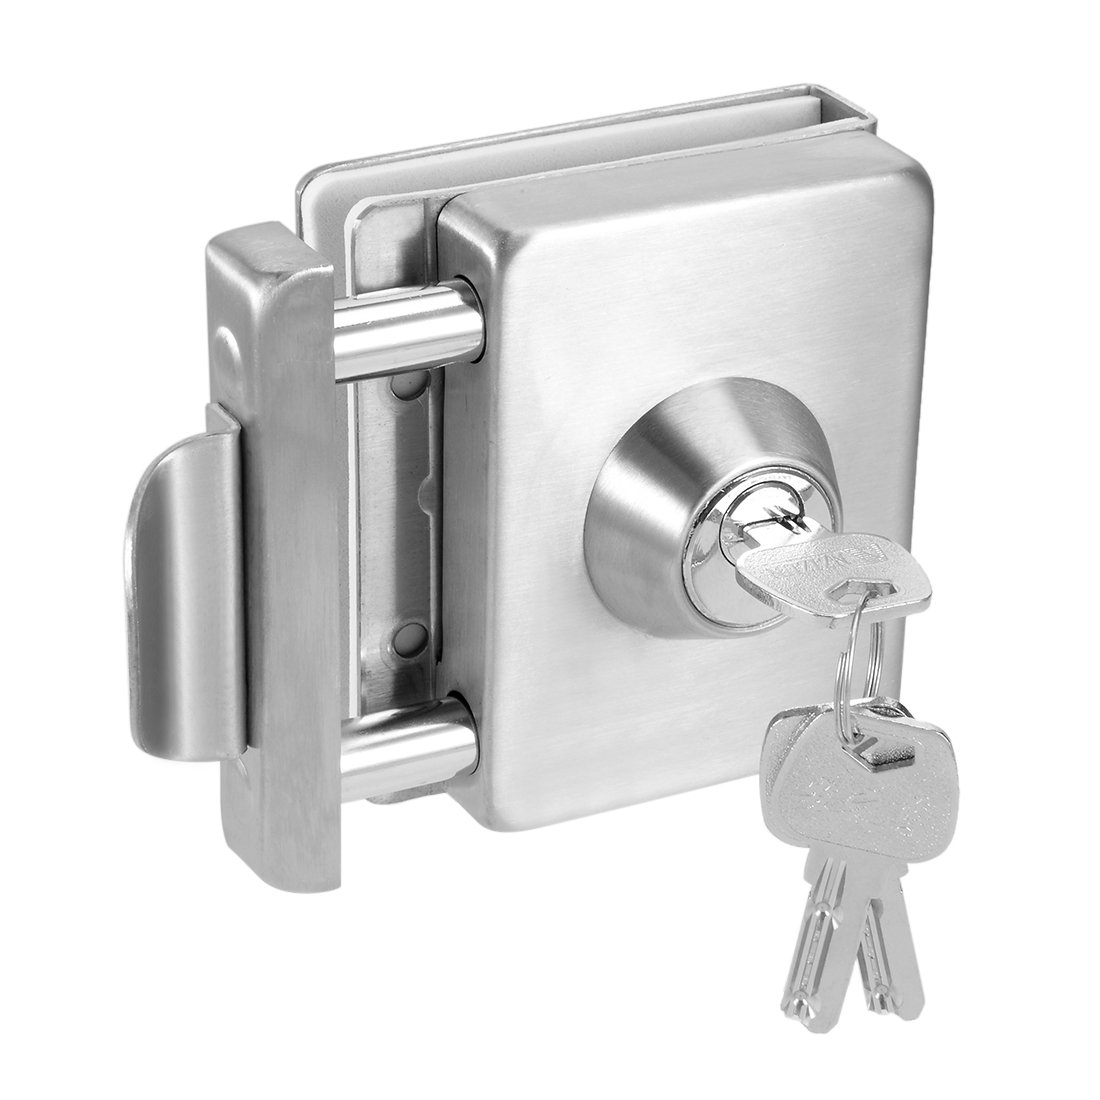 uxcell 10mm-12mm Glass Door Double Latch Lock Stainless Steel Brushed Finish w Keys